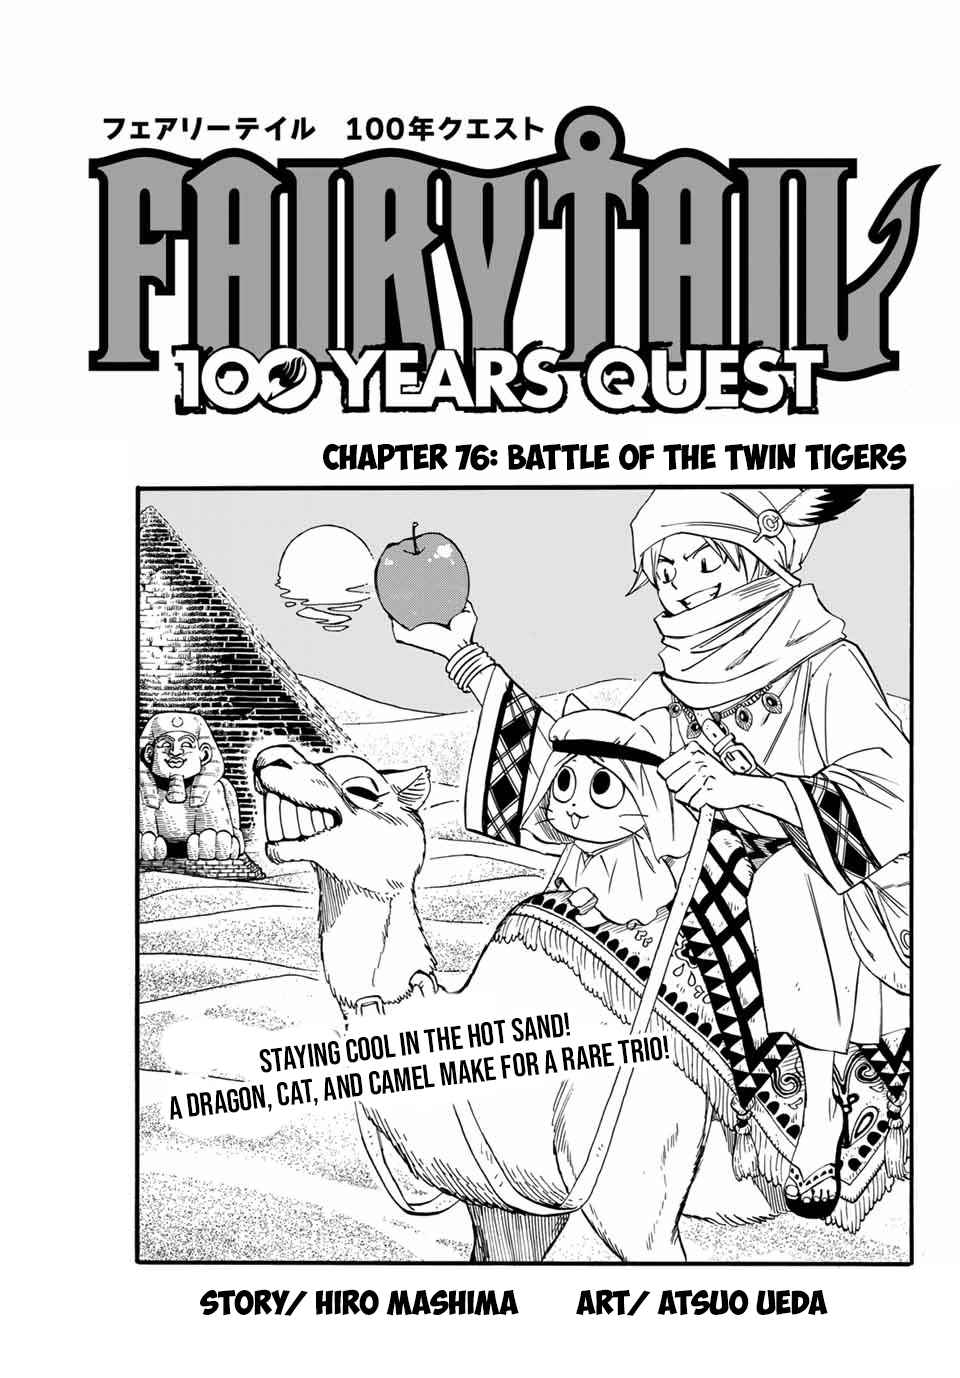 Fairy Tail: 100 Years Quest Ch. 76 Battle of the Twin Tigers